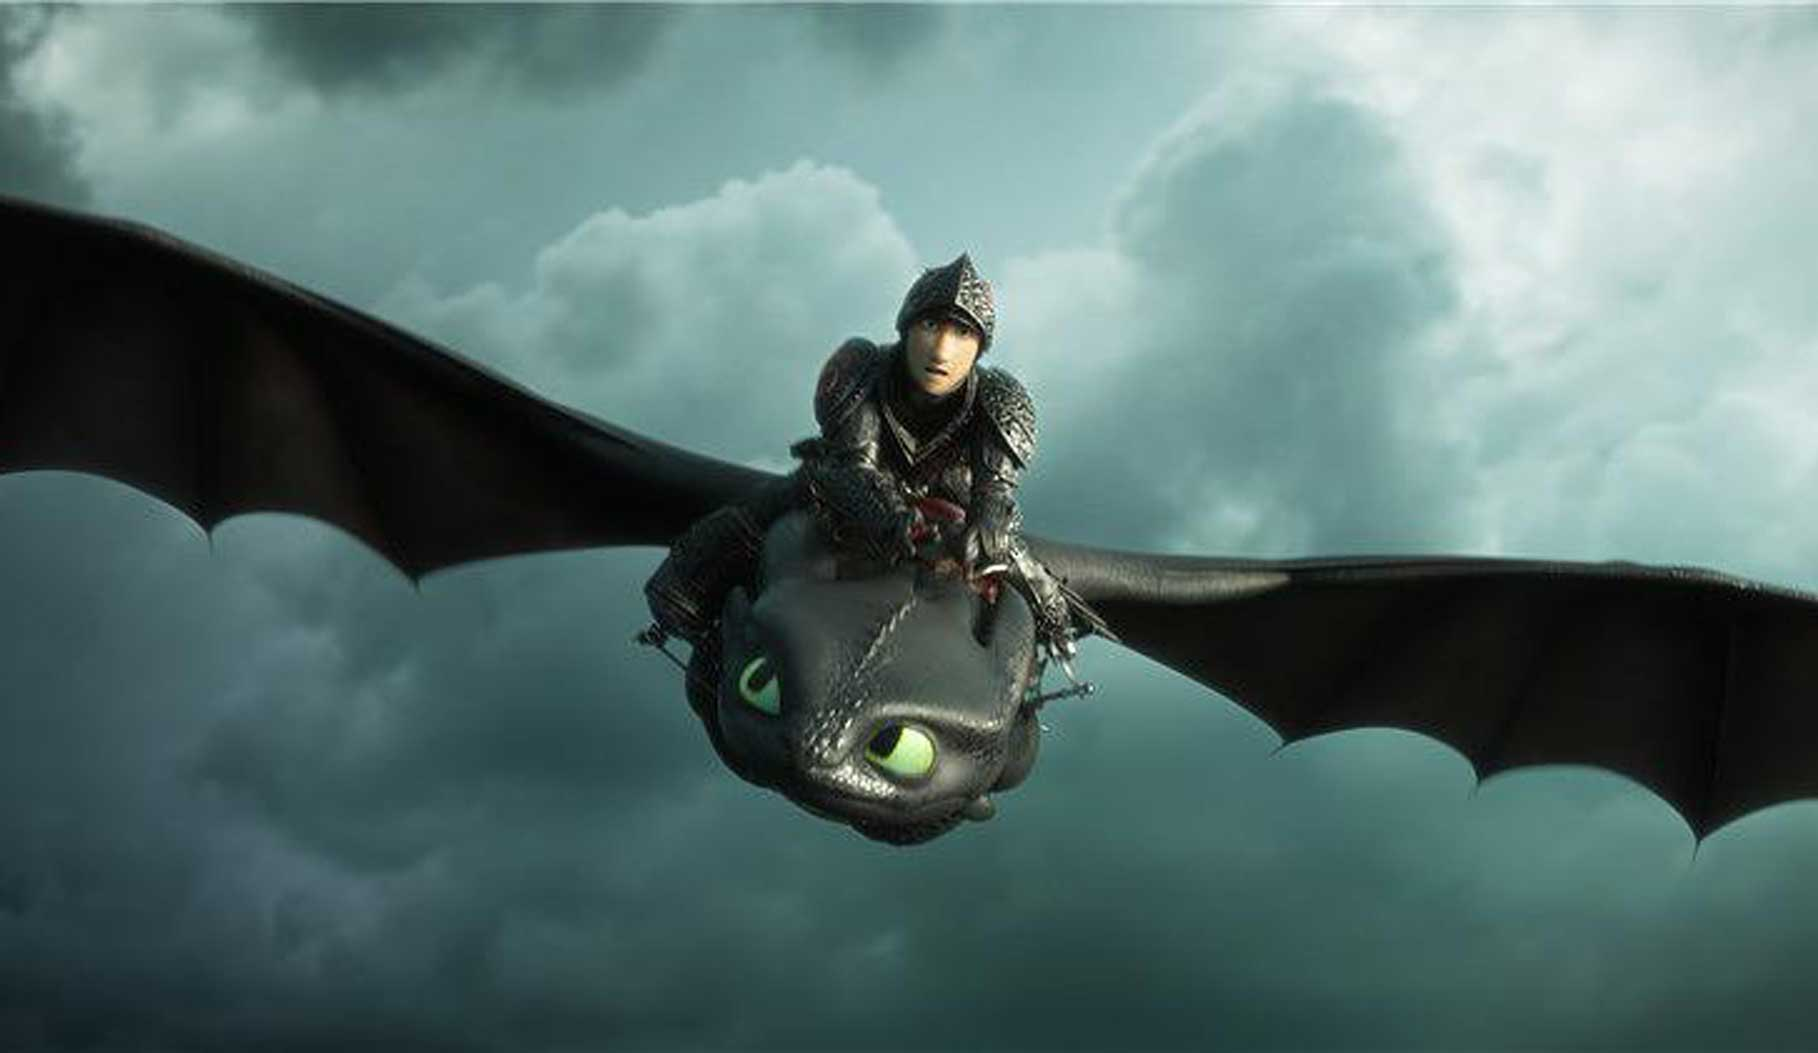 Say Goodbye To The Dragons In The New Trailer For 'How To Train Your Dragon 3'